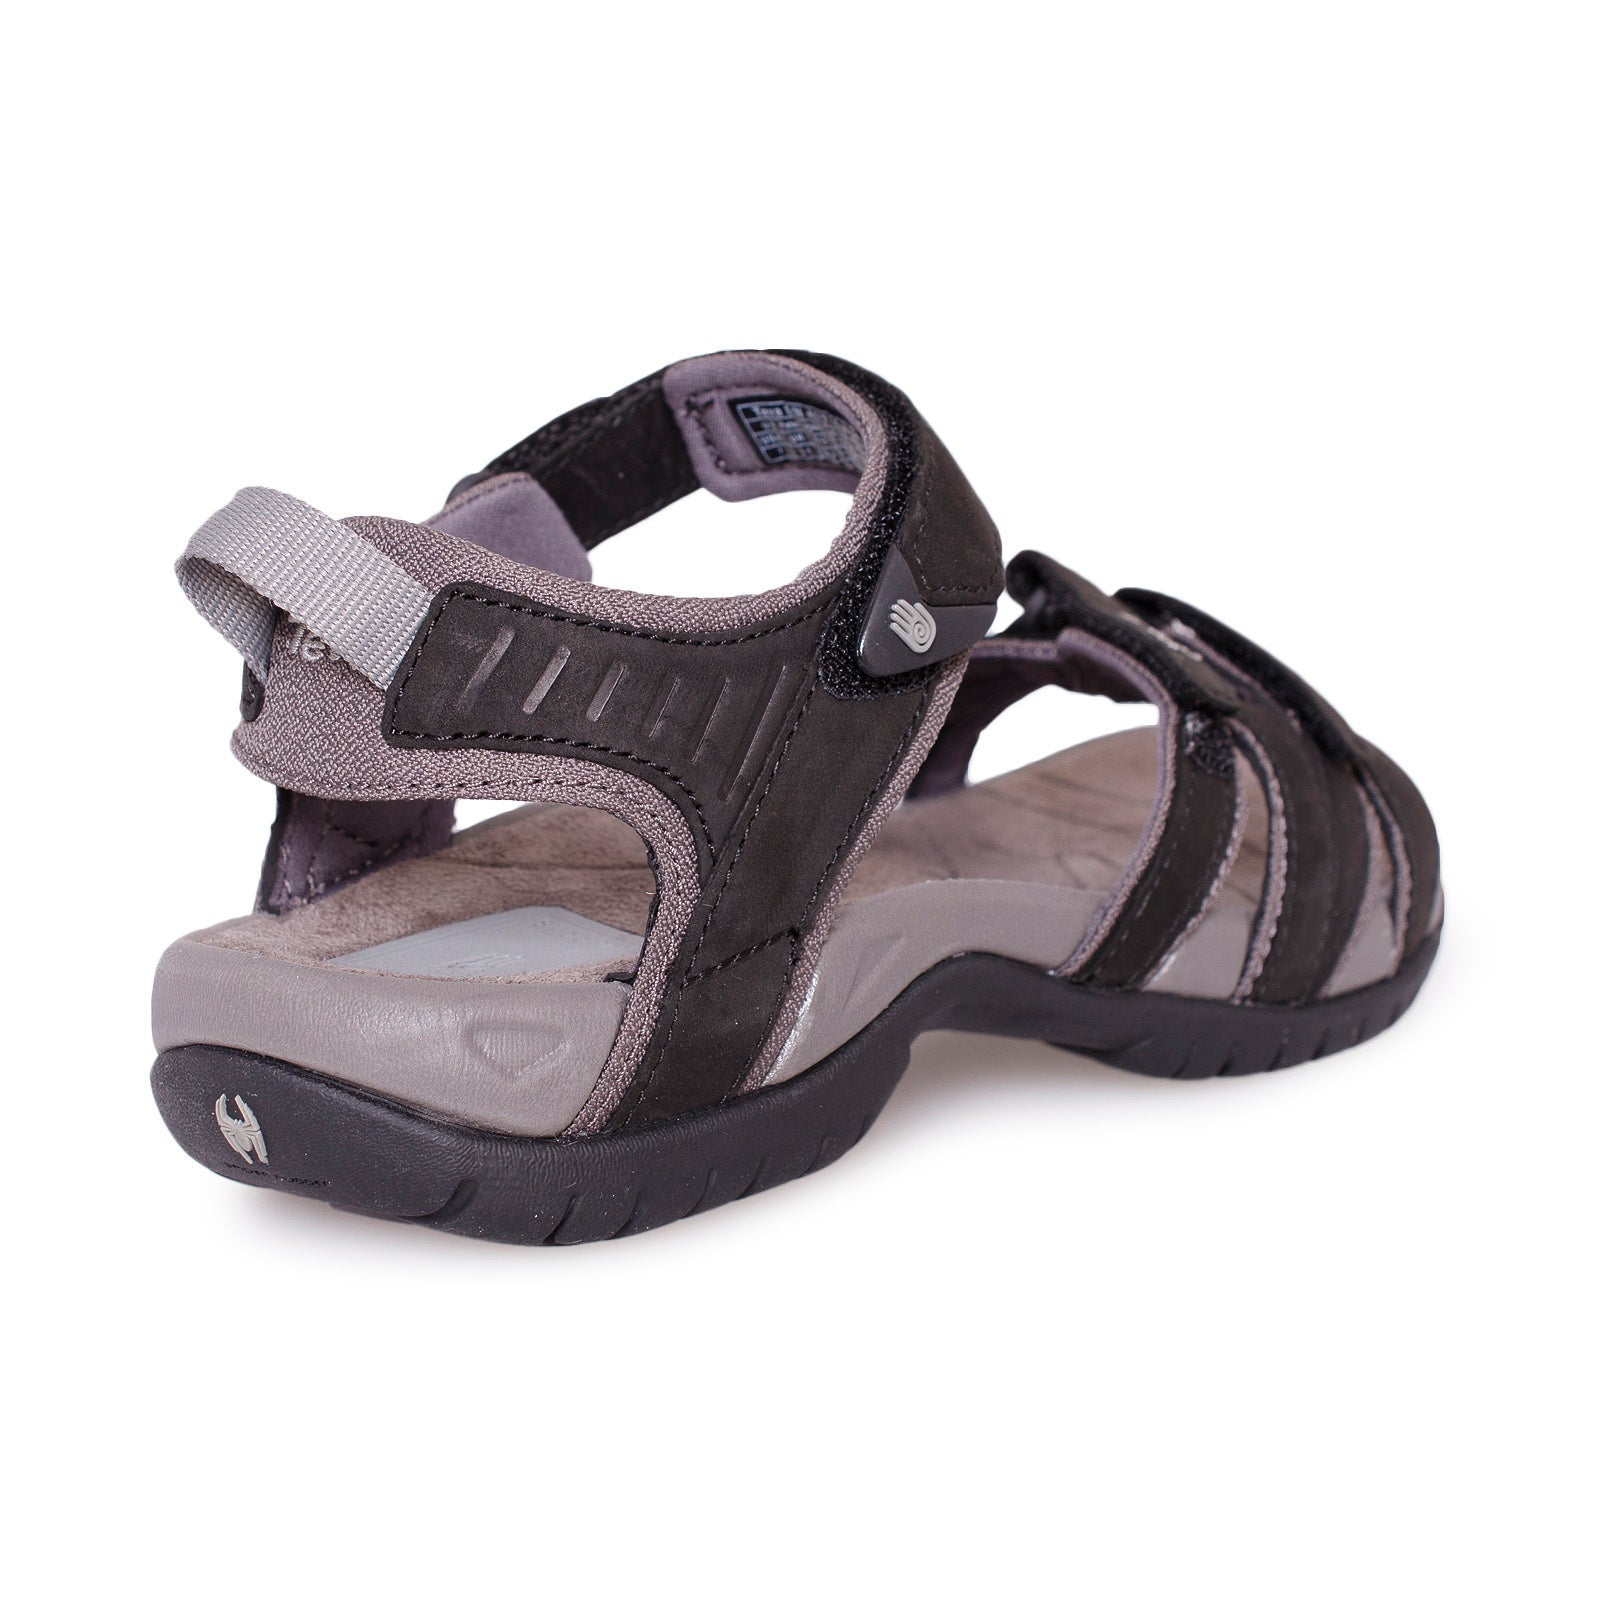 813e98efa80a Teva Tirra Leather Black Sandals - Women s - MyCozyBoots